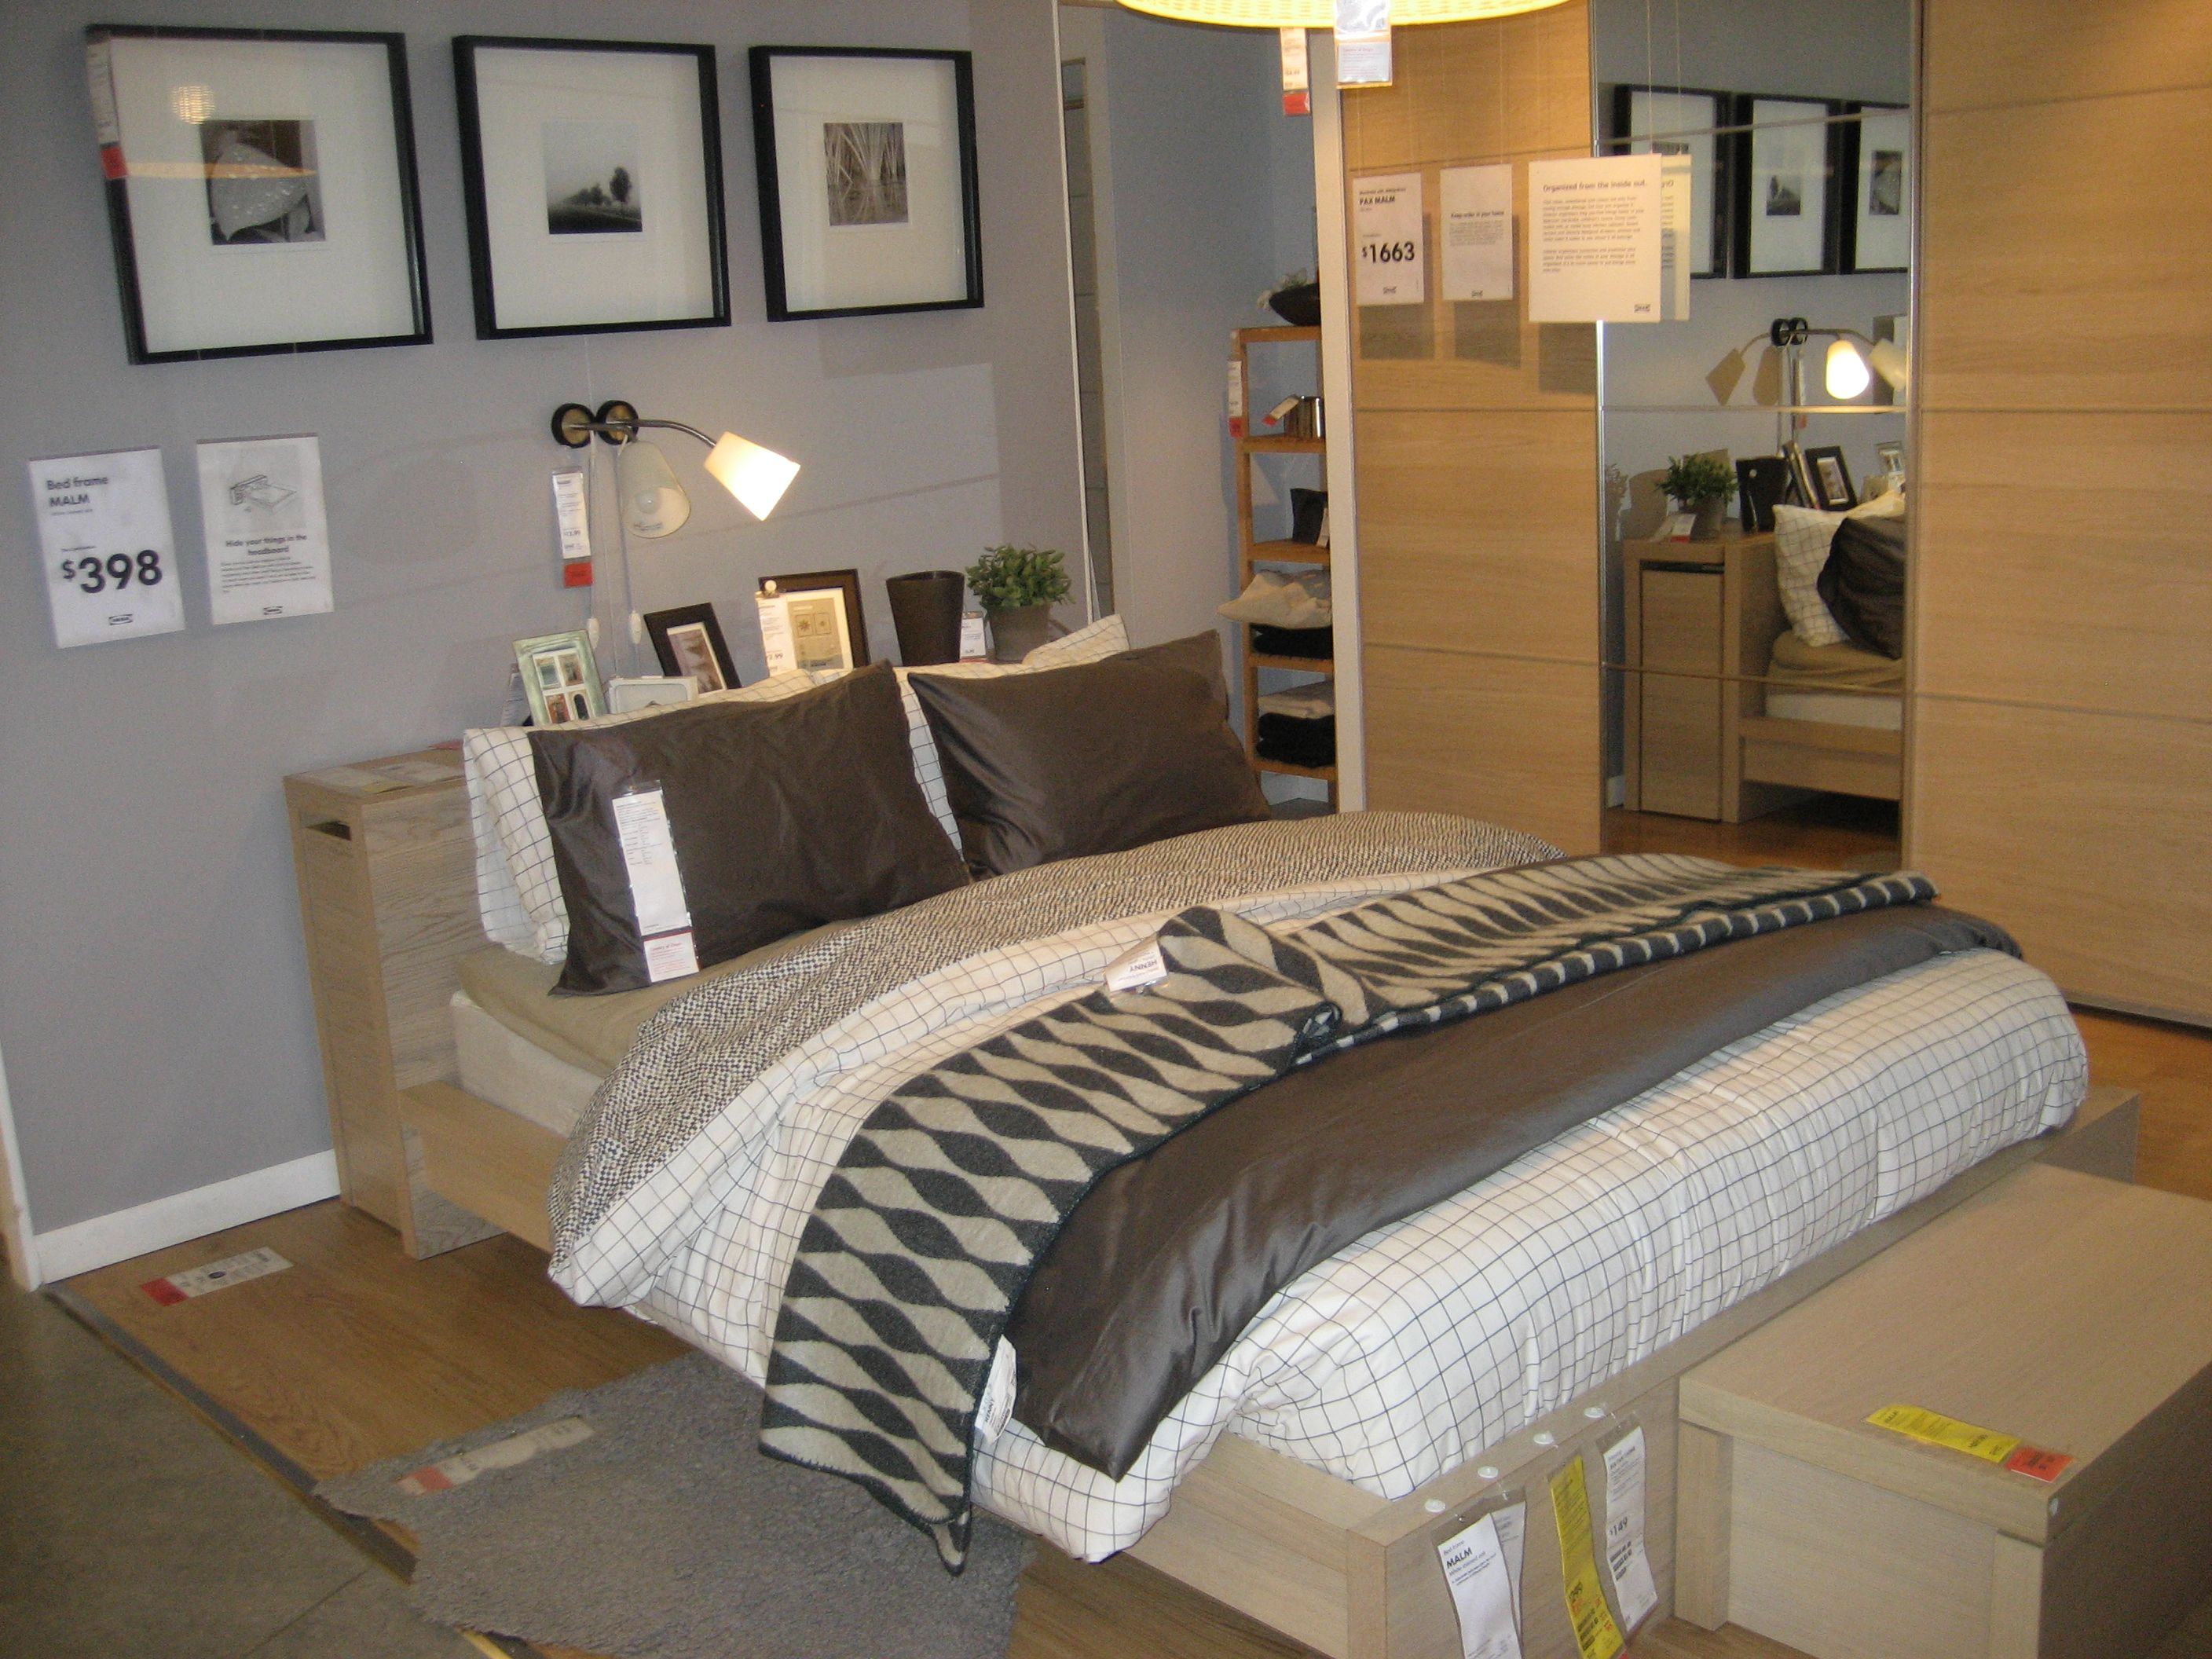 ikea malm bedroom set | bedroom | pinterest | ikea malm, malm and